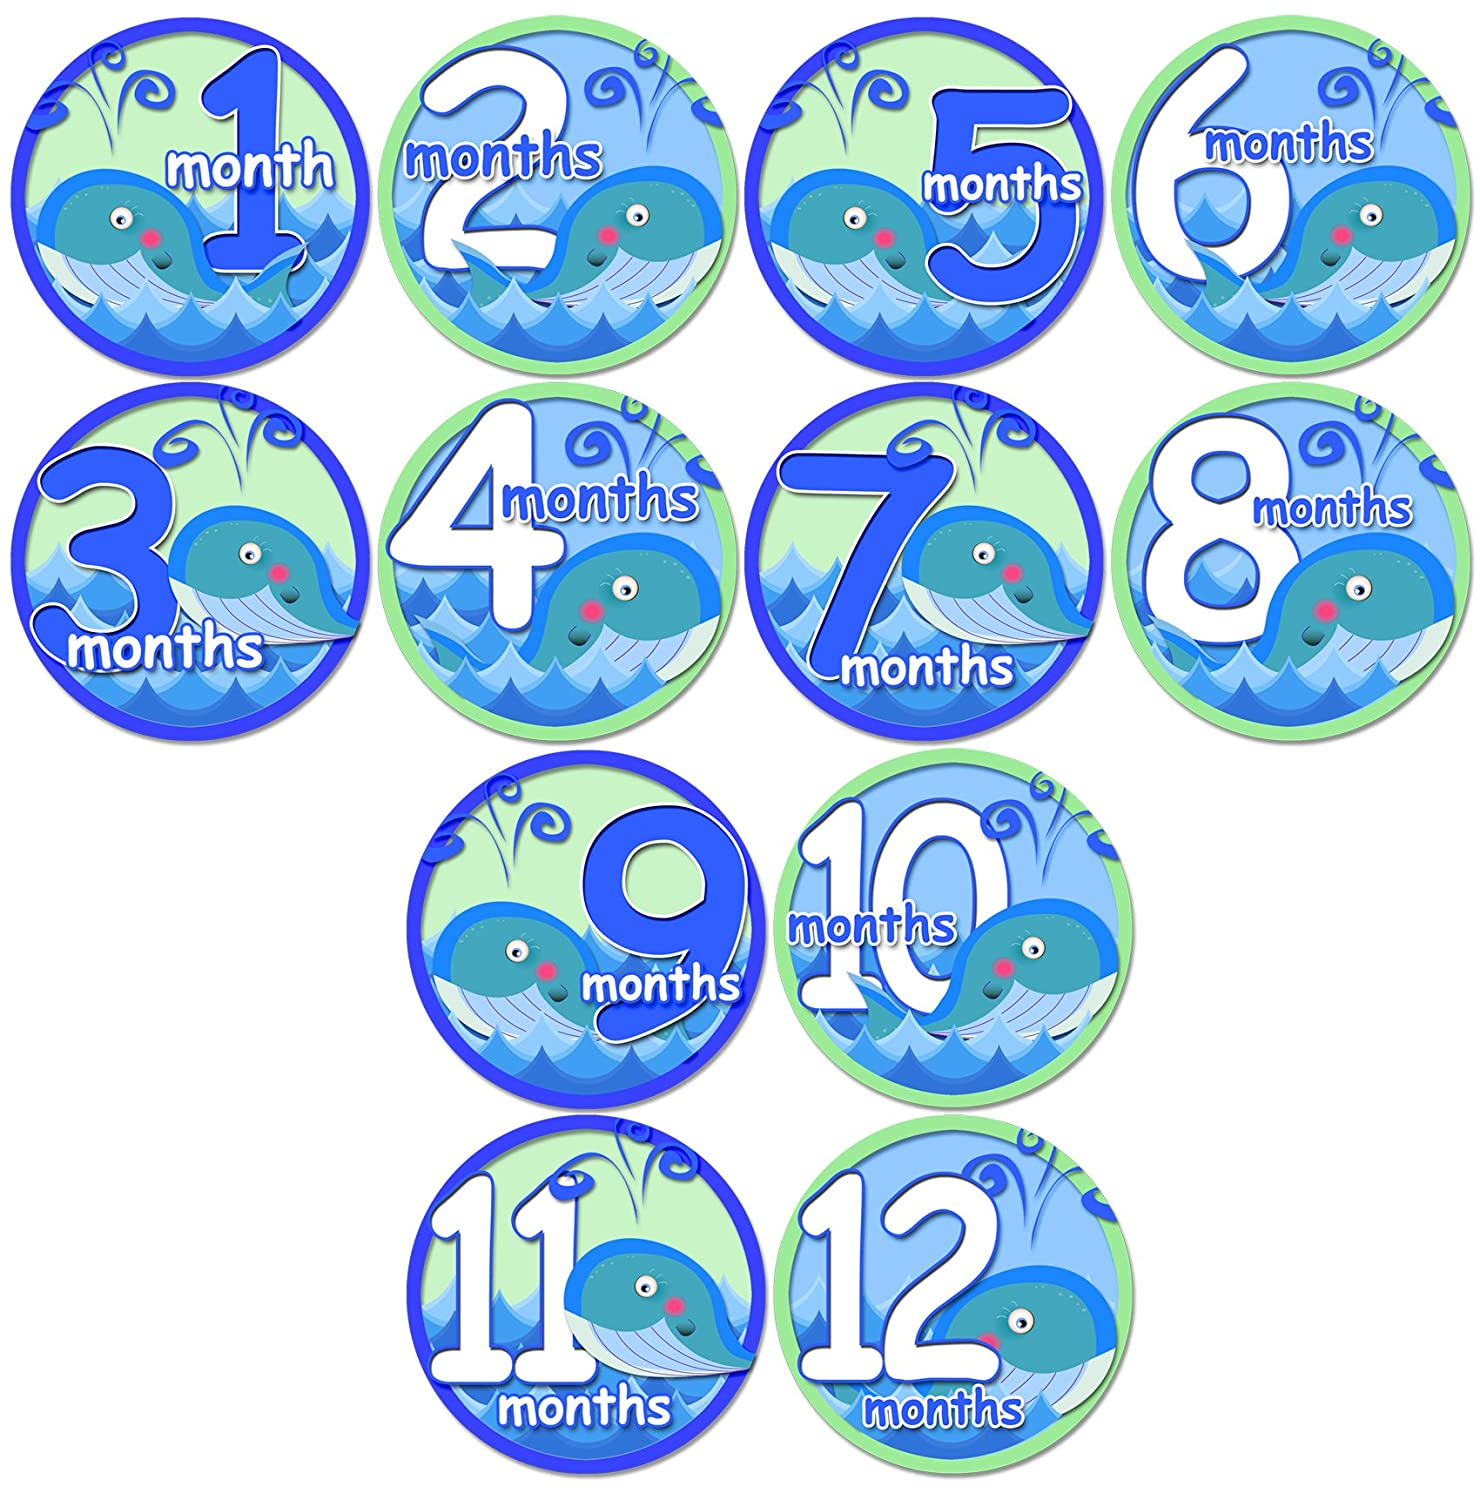 Amazon baby whales baby month onesie stickers baby shower gift amazon baby whales baby month onesie stickers baby shower gift photo shower stickers baby shower gift by onesiestickers baby keepsake products negle Image collections